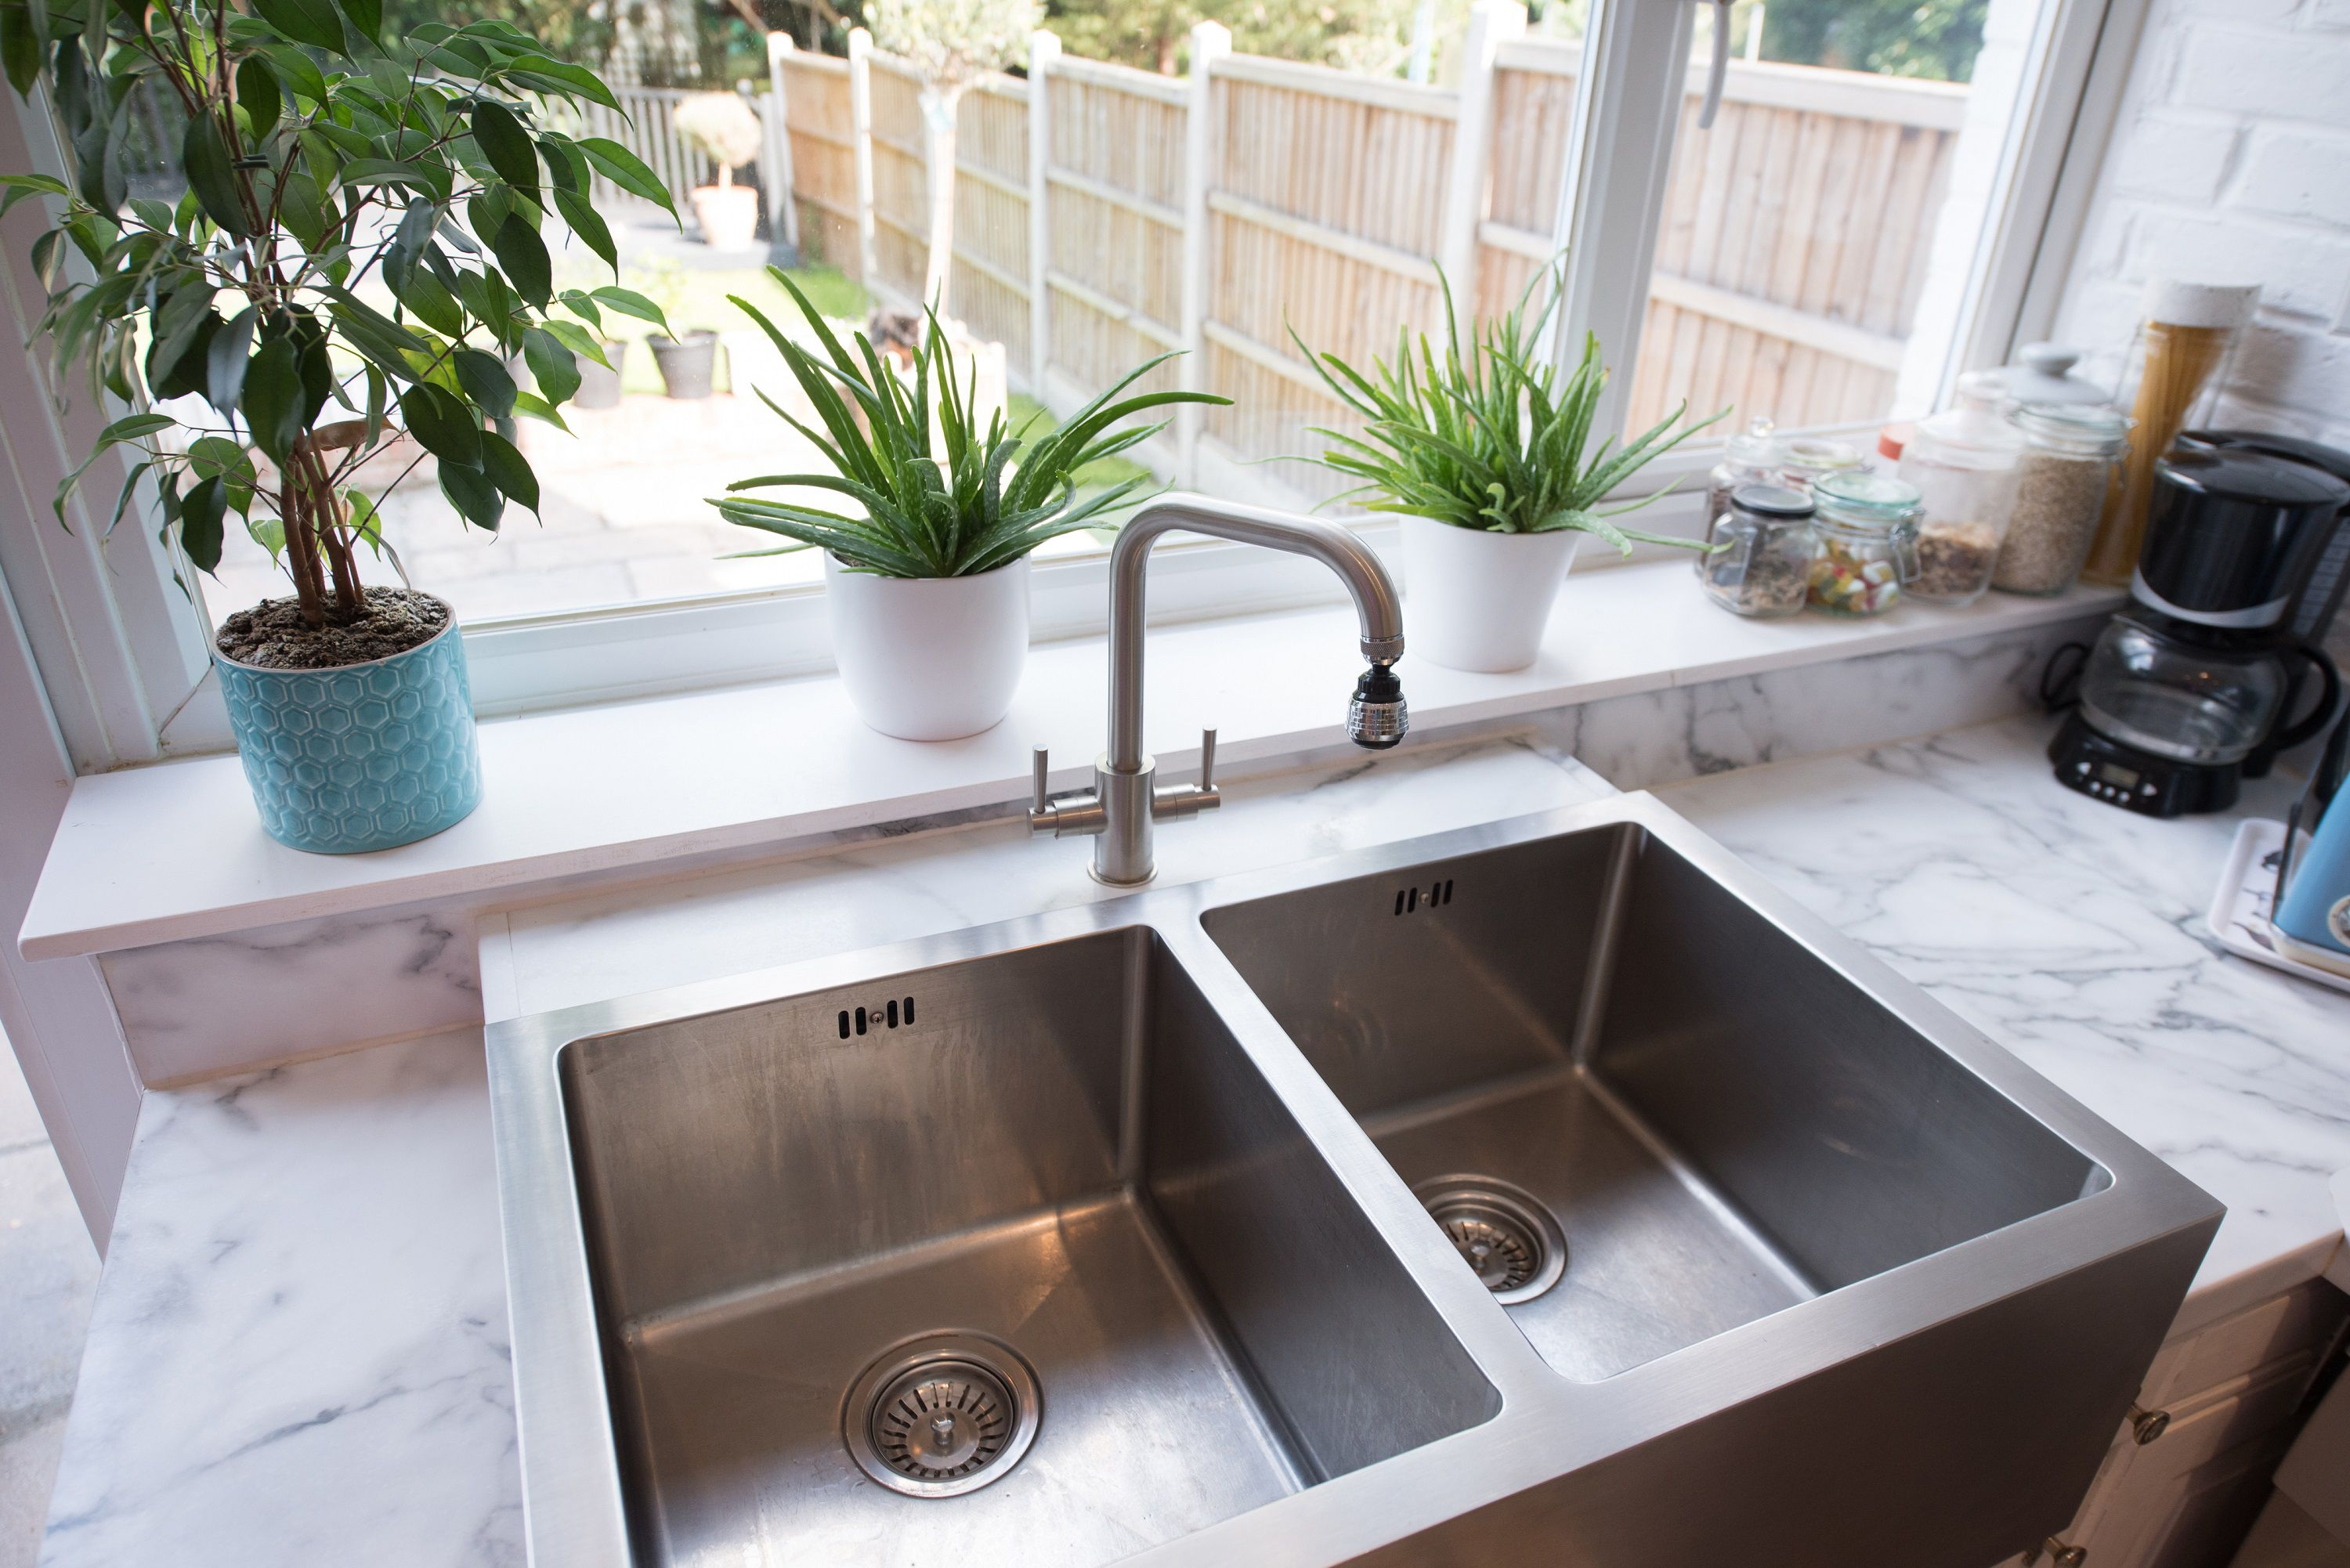 Remove Stains and Spots and Make Your Stainless Steel Sink Sparkle